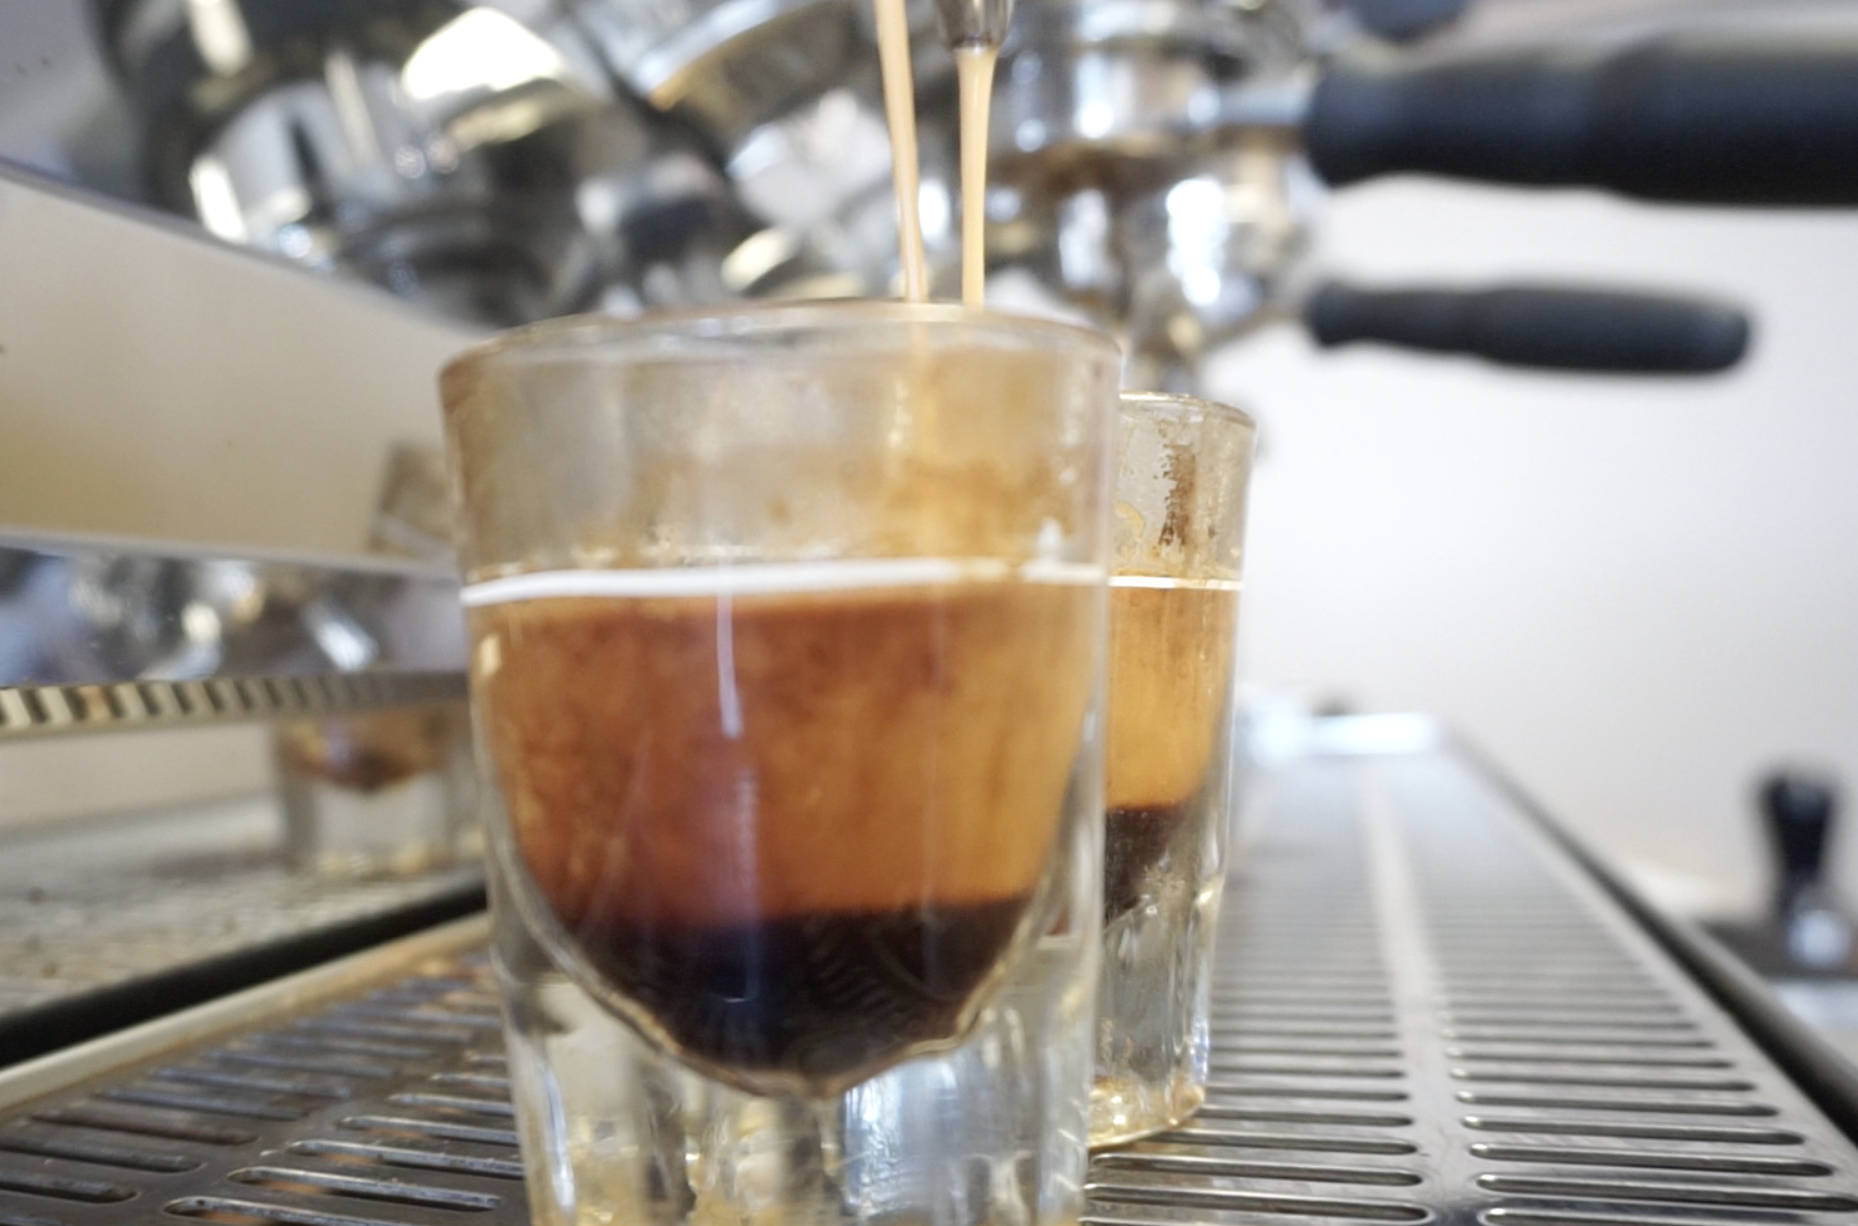 Photo of espresso shots being pulled on the La Marzocco Strada EP